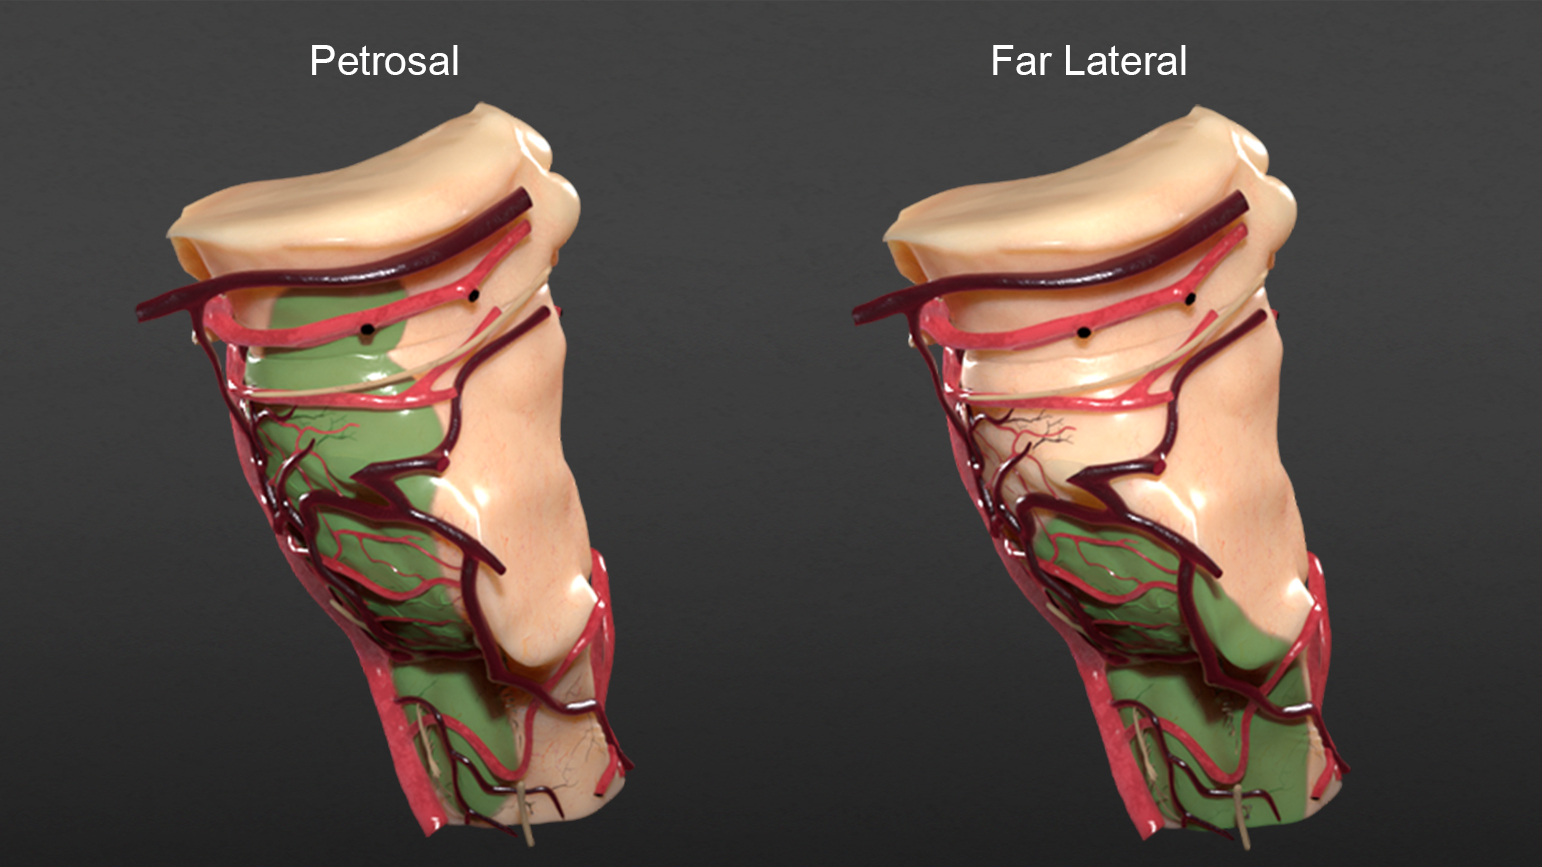 Figure 8:  The areas of exposure (green) for the petrosal and far lateral cranial approaches are illustrated.